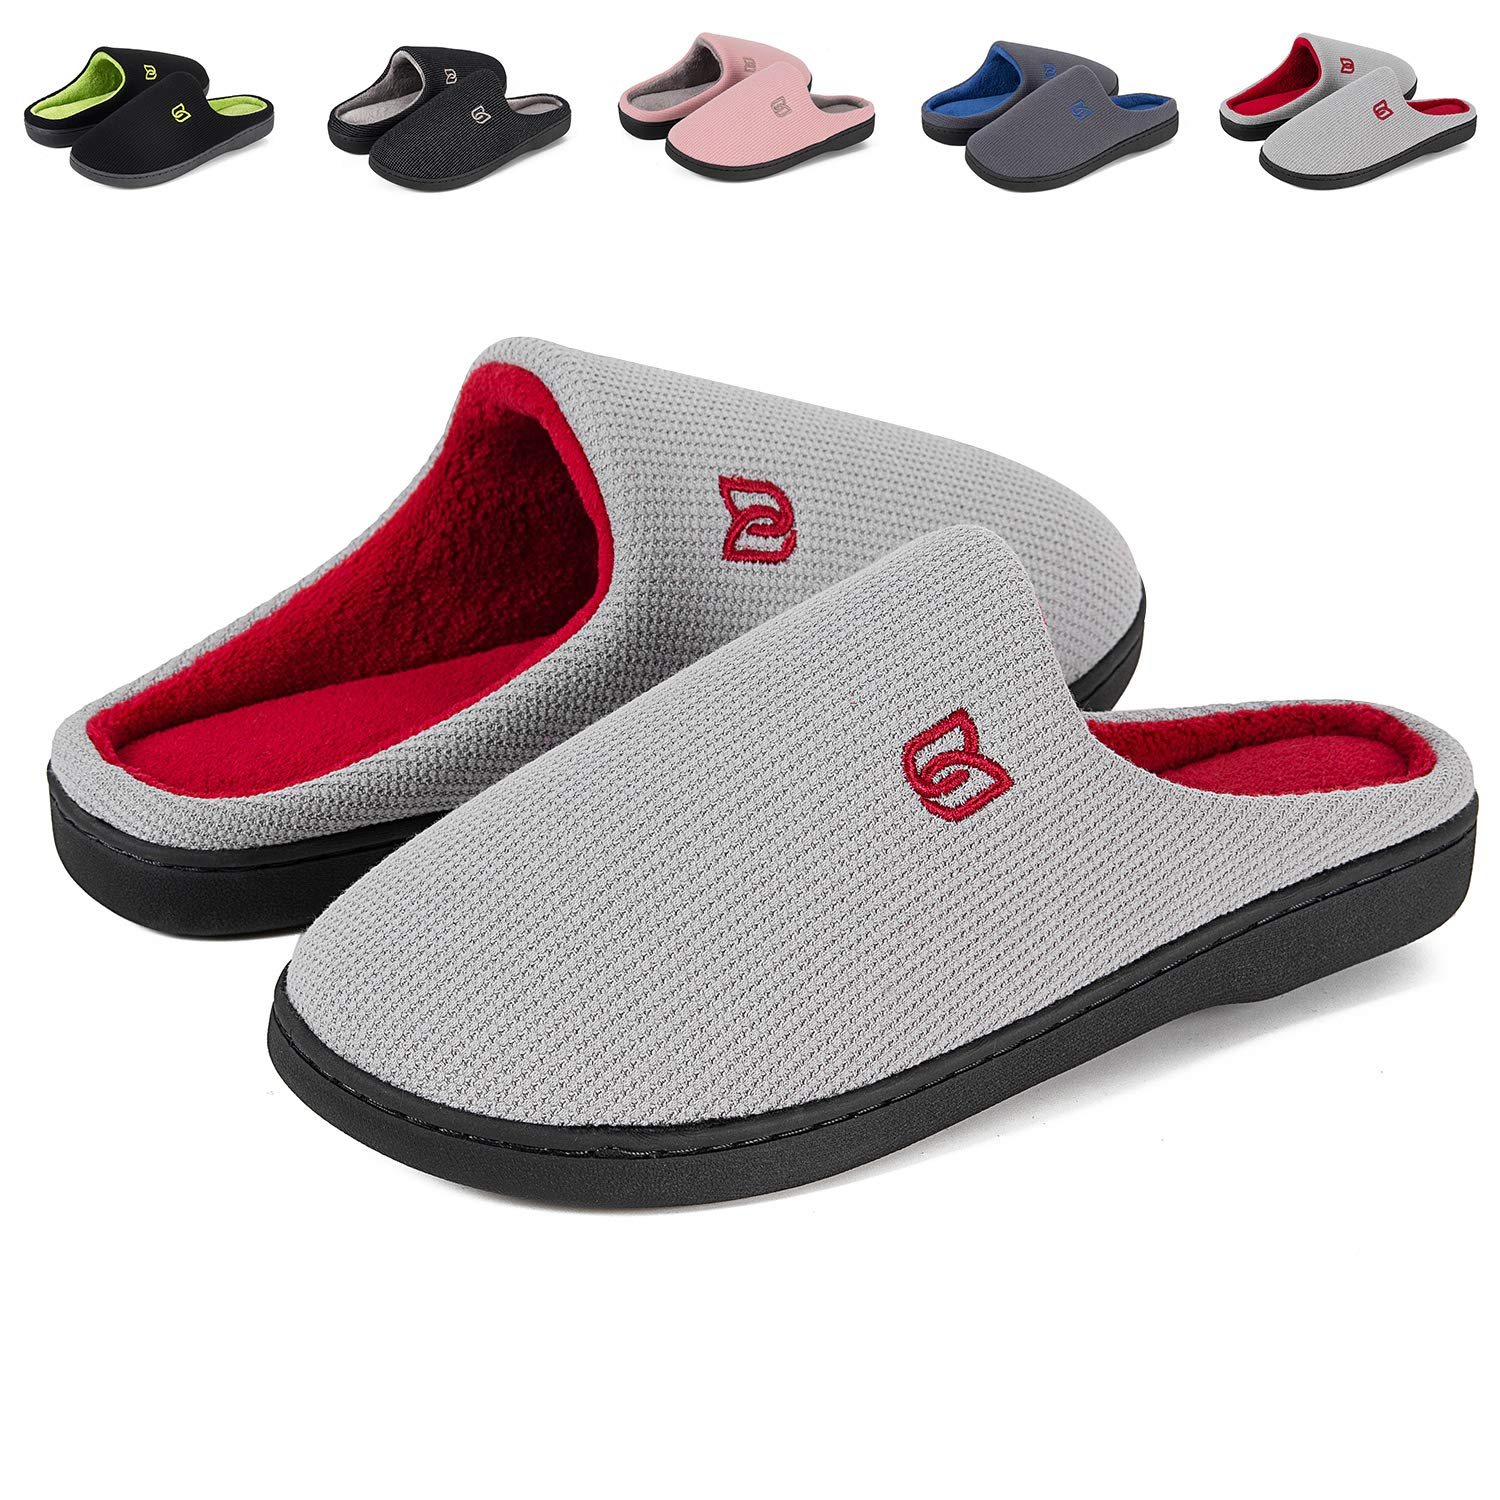 e984ac42ca6 Synthetic sole. COMFORTABLE WEARING EXPERIENCE  IceUnicorn house slippers  are made of high-quality breathable upper and soft comfort plush inner.